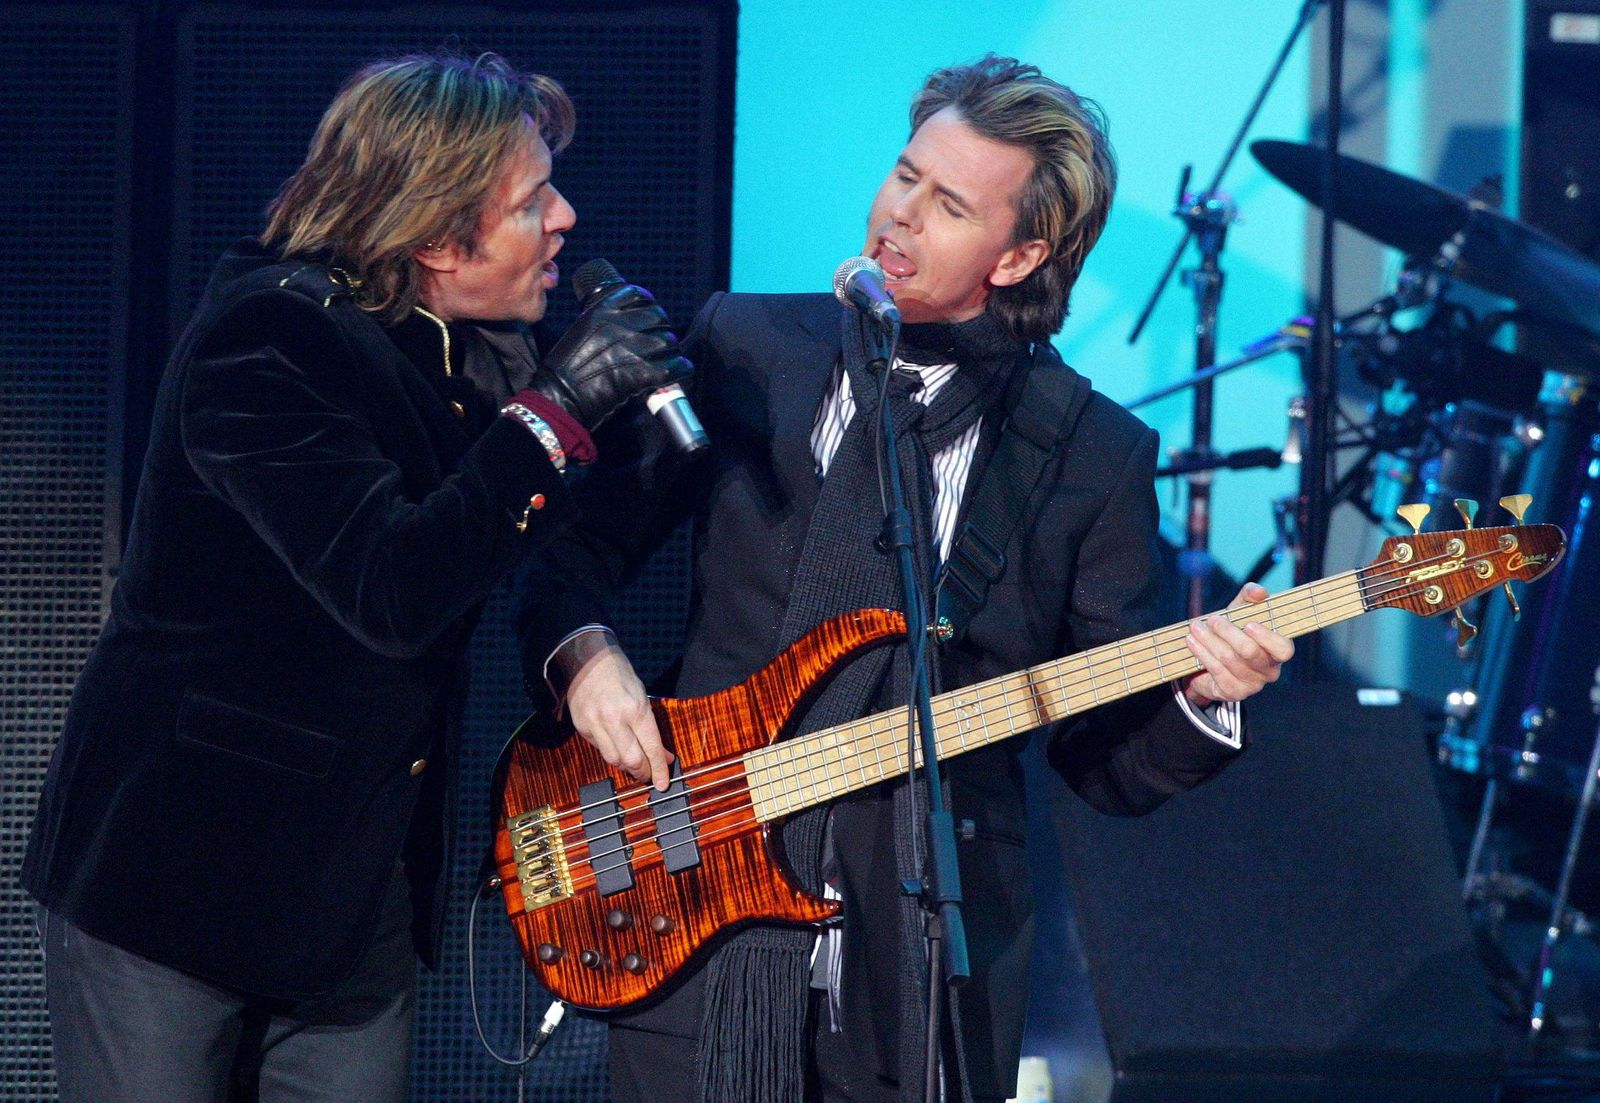 British pop group Duran Duran perform during a medal ceremony at the Winter Olympic Games